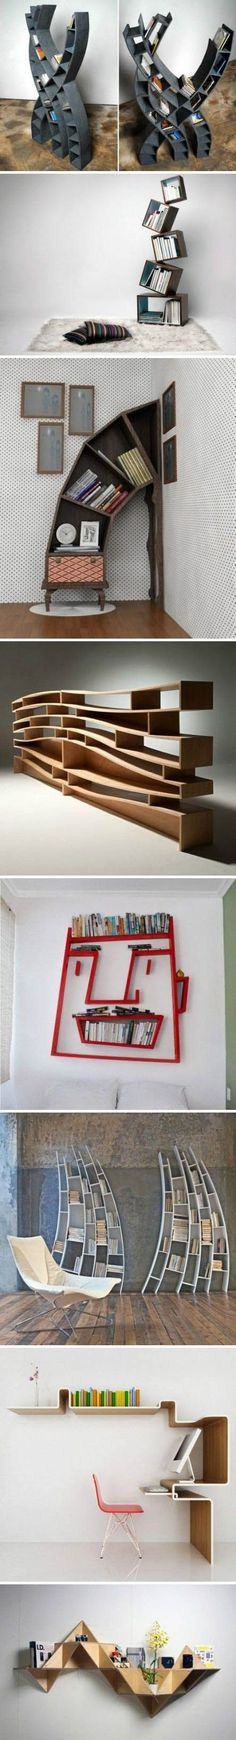 Cool Bookshelf | DIY Crafts Tutorials by olga